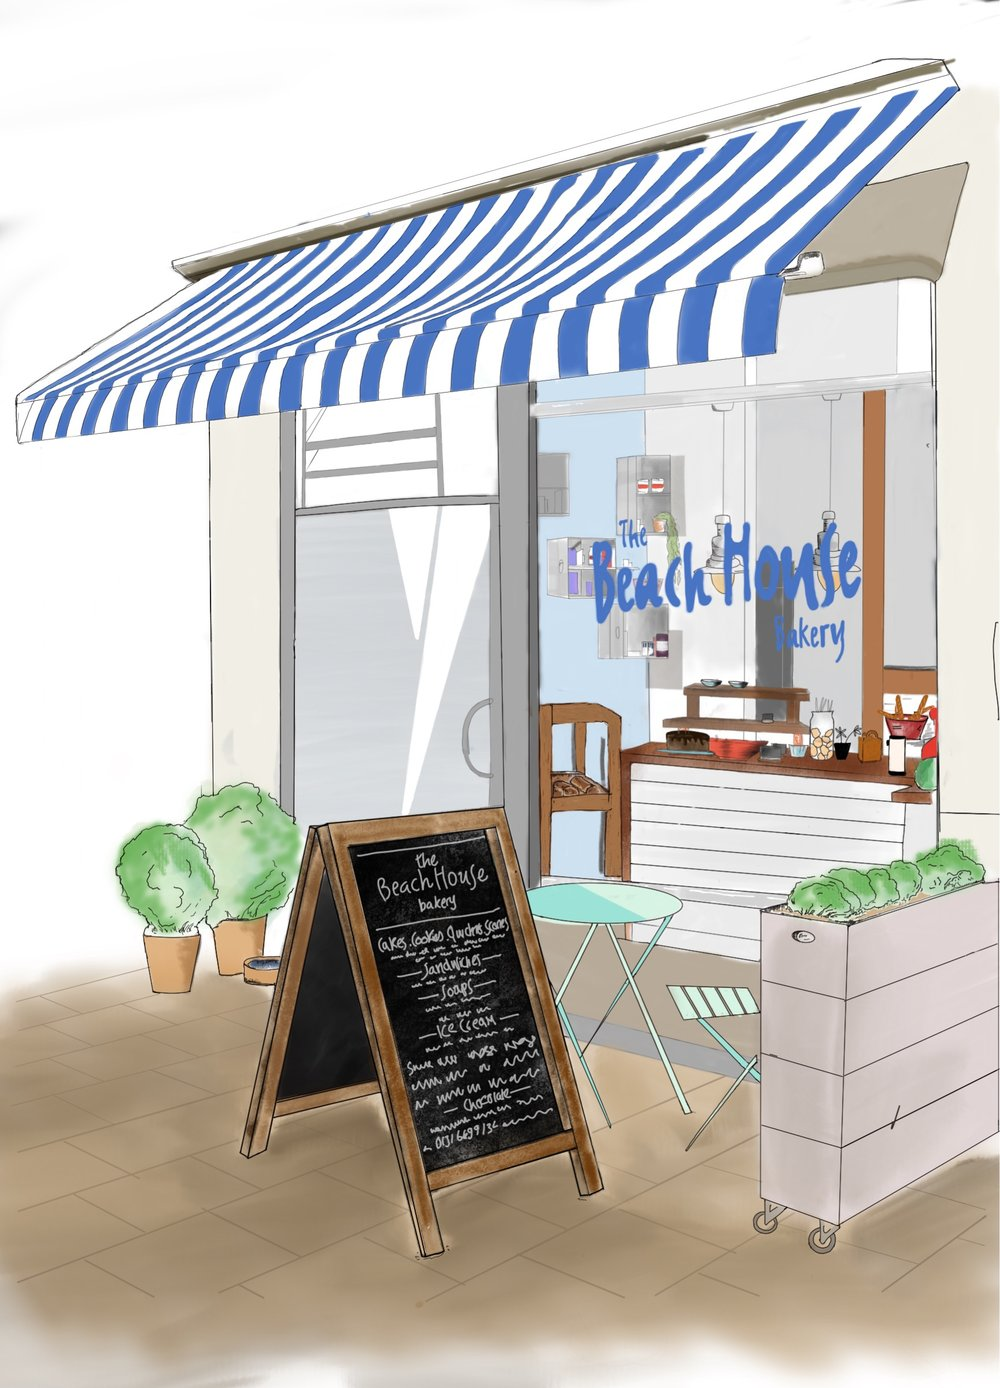 The Beach House Bakery 49B95CB2 94CD 42E5 A202 0FD47B53EAA4 1